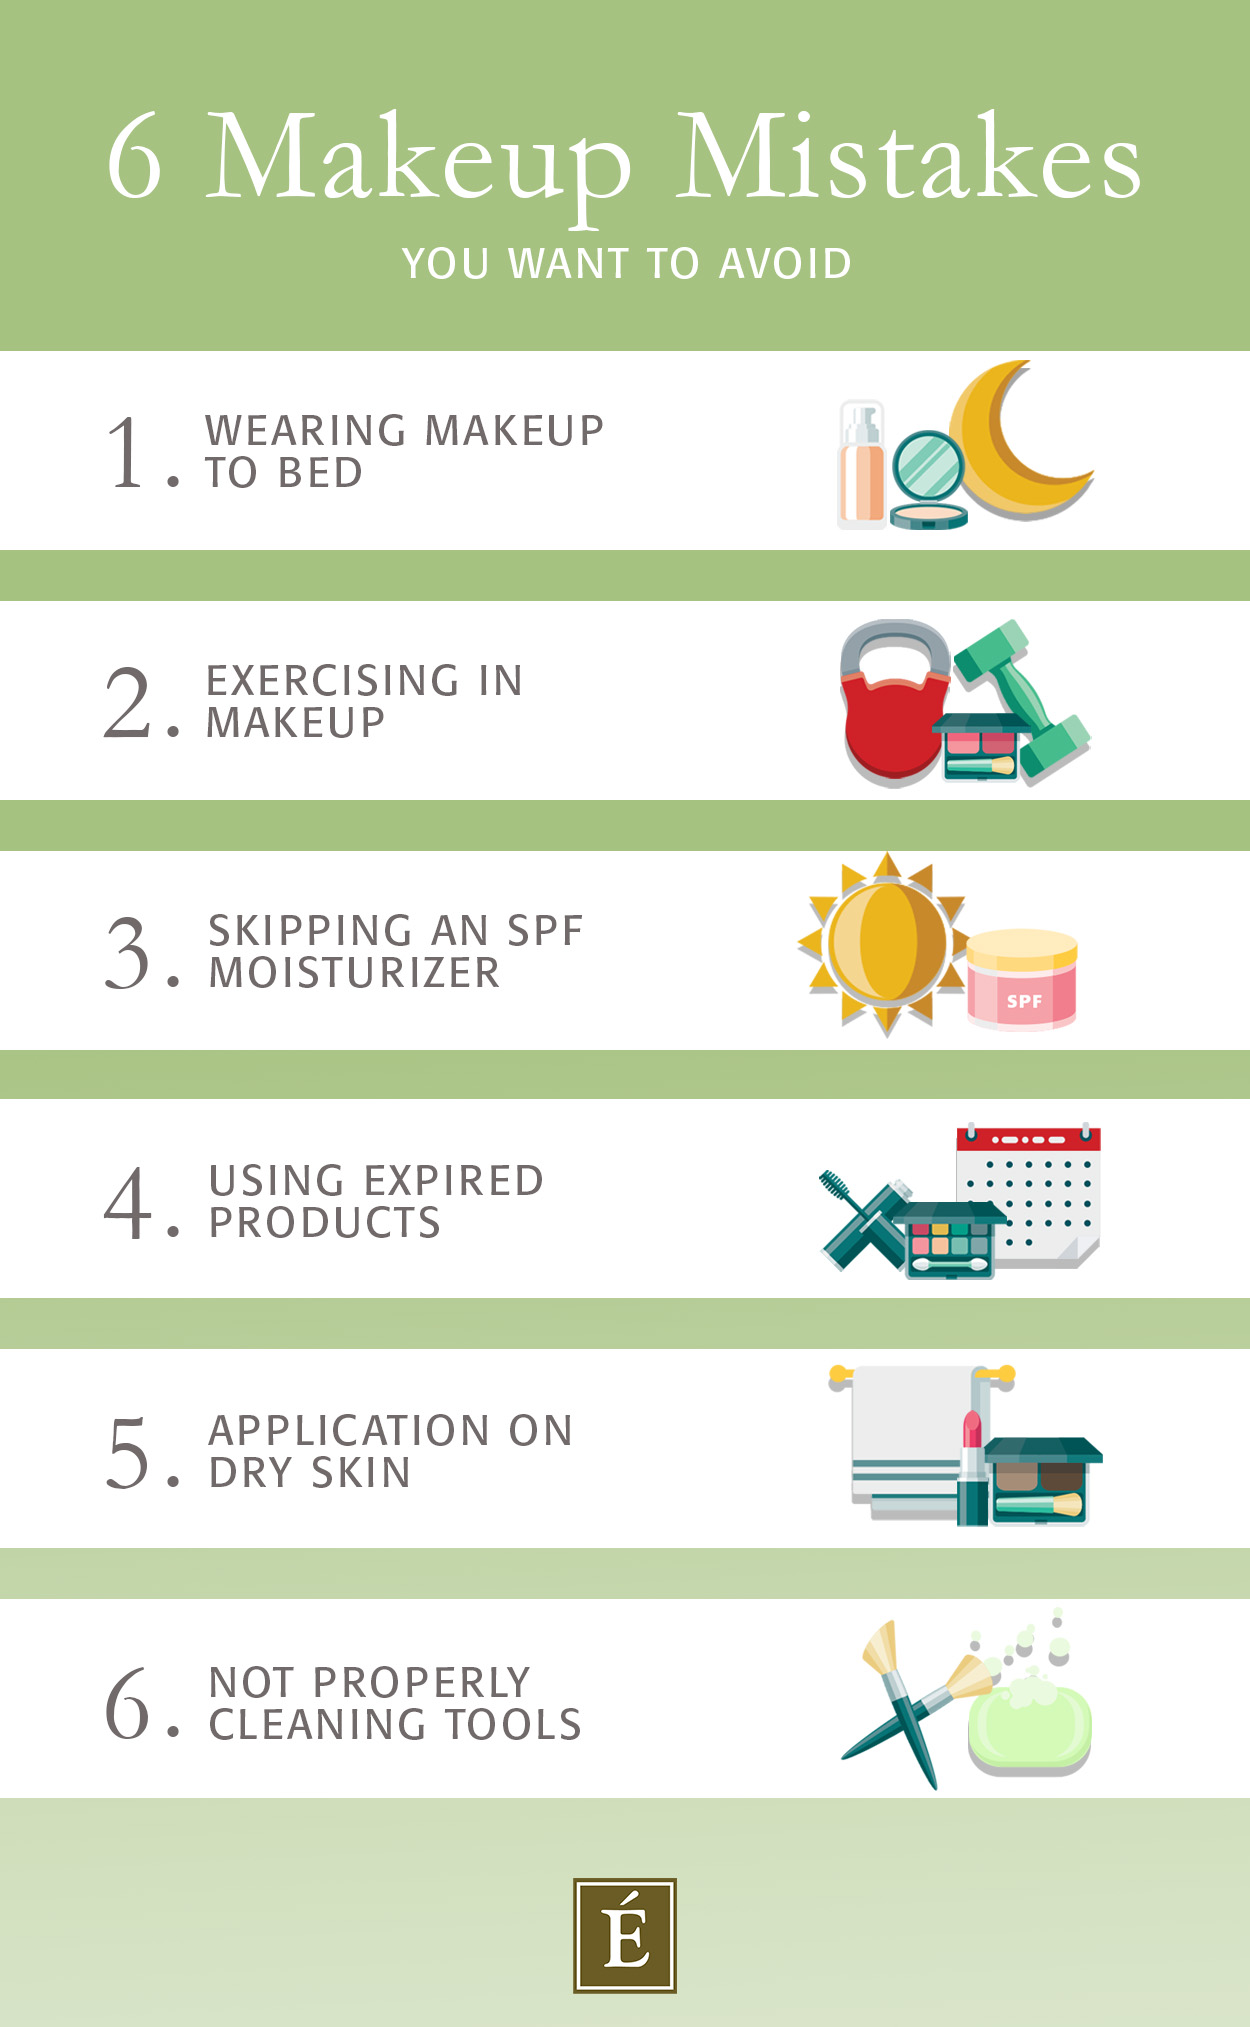 Eminence Organics Makeup Mistakes Infographic